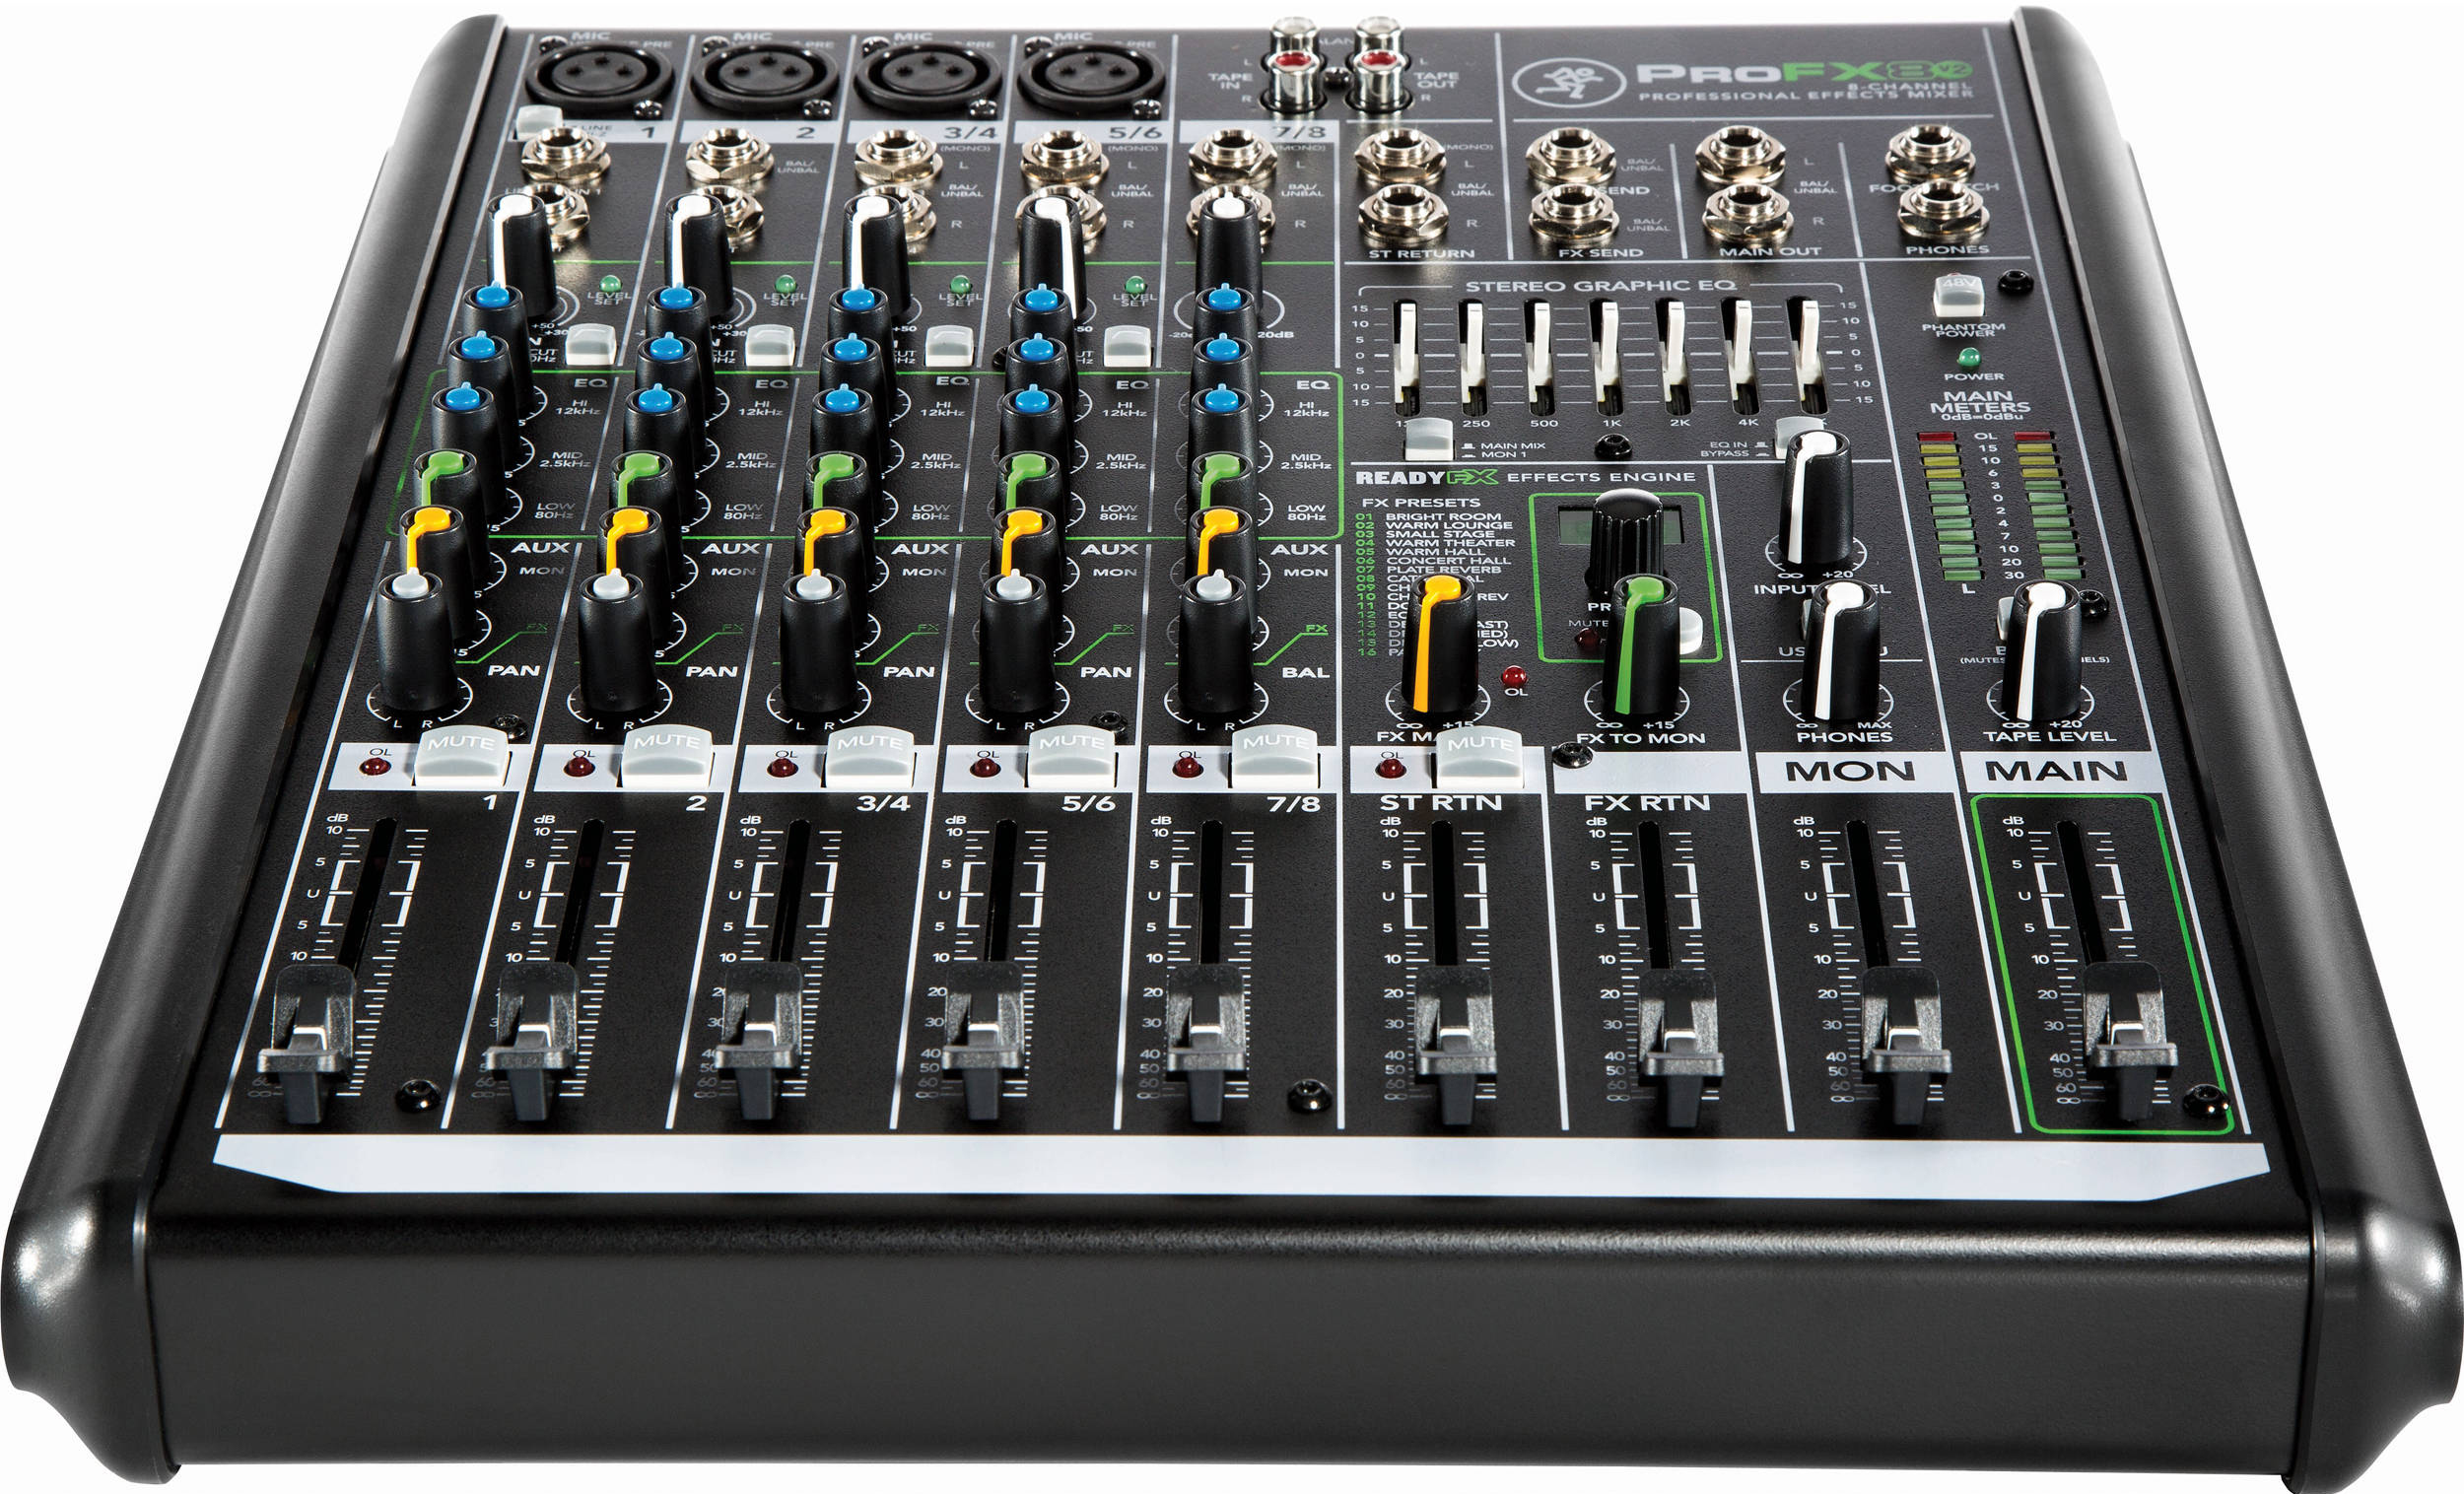 Audio Week: Which Live Sound Front of House Mixer is for You?